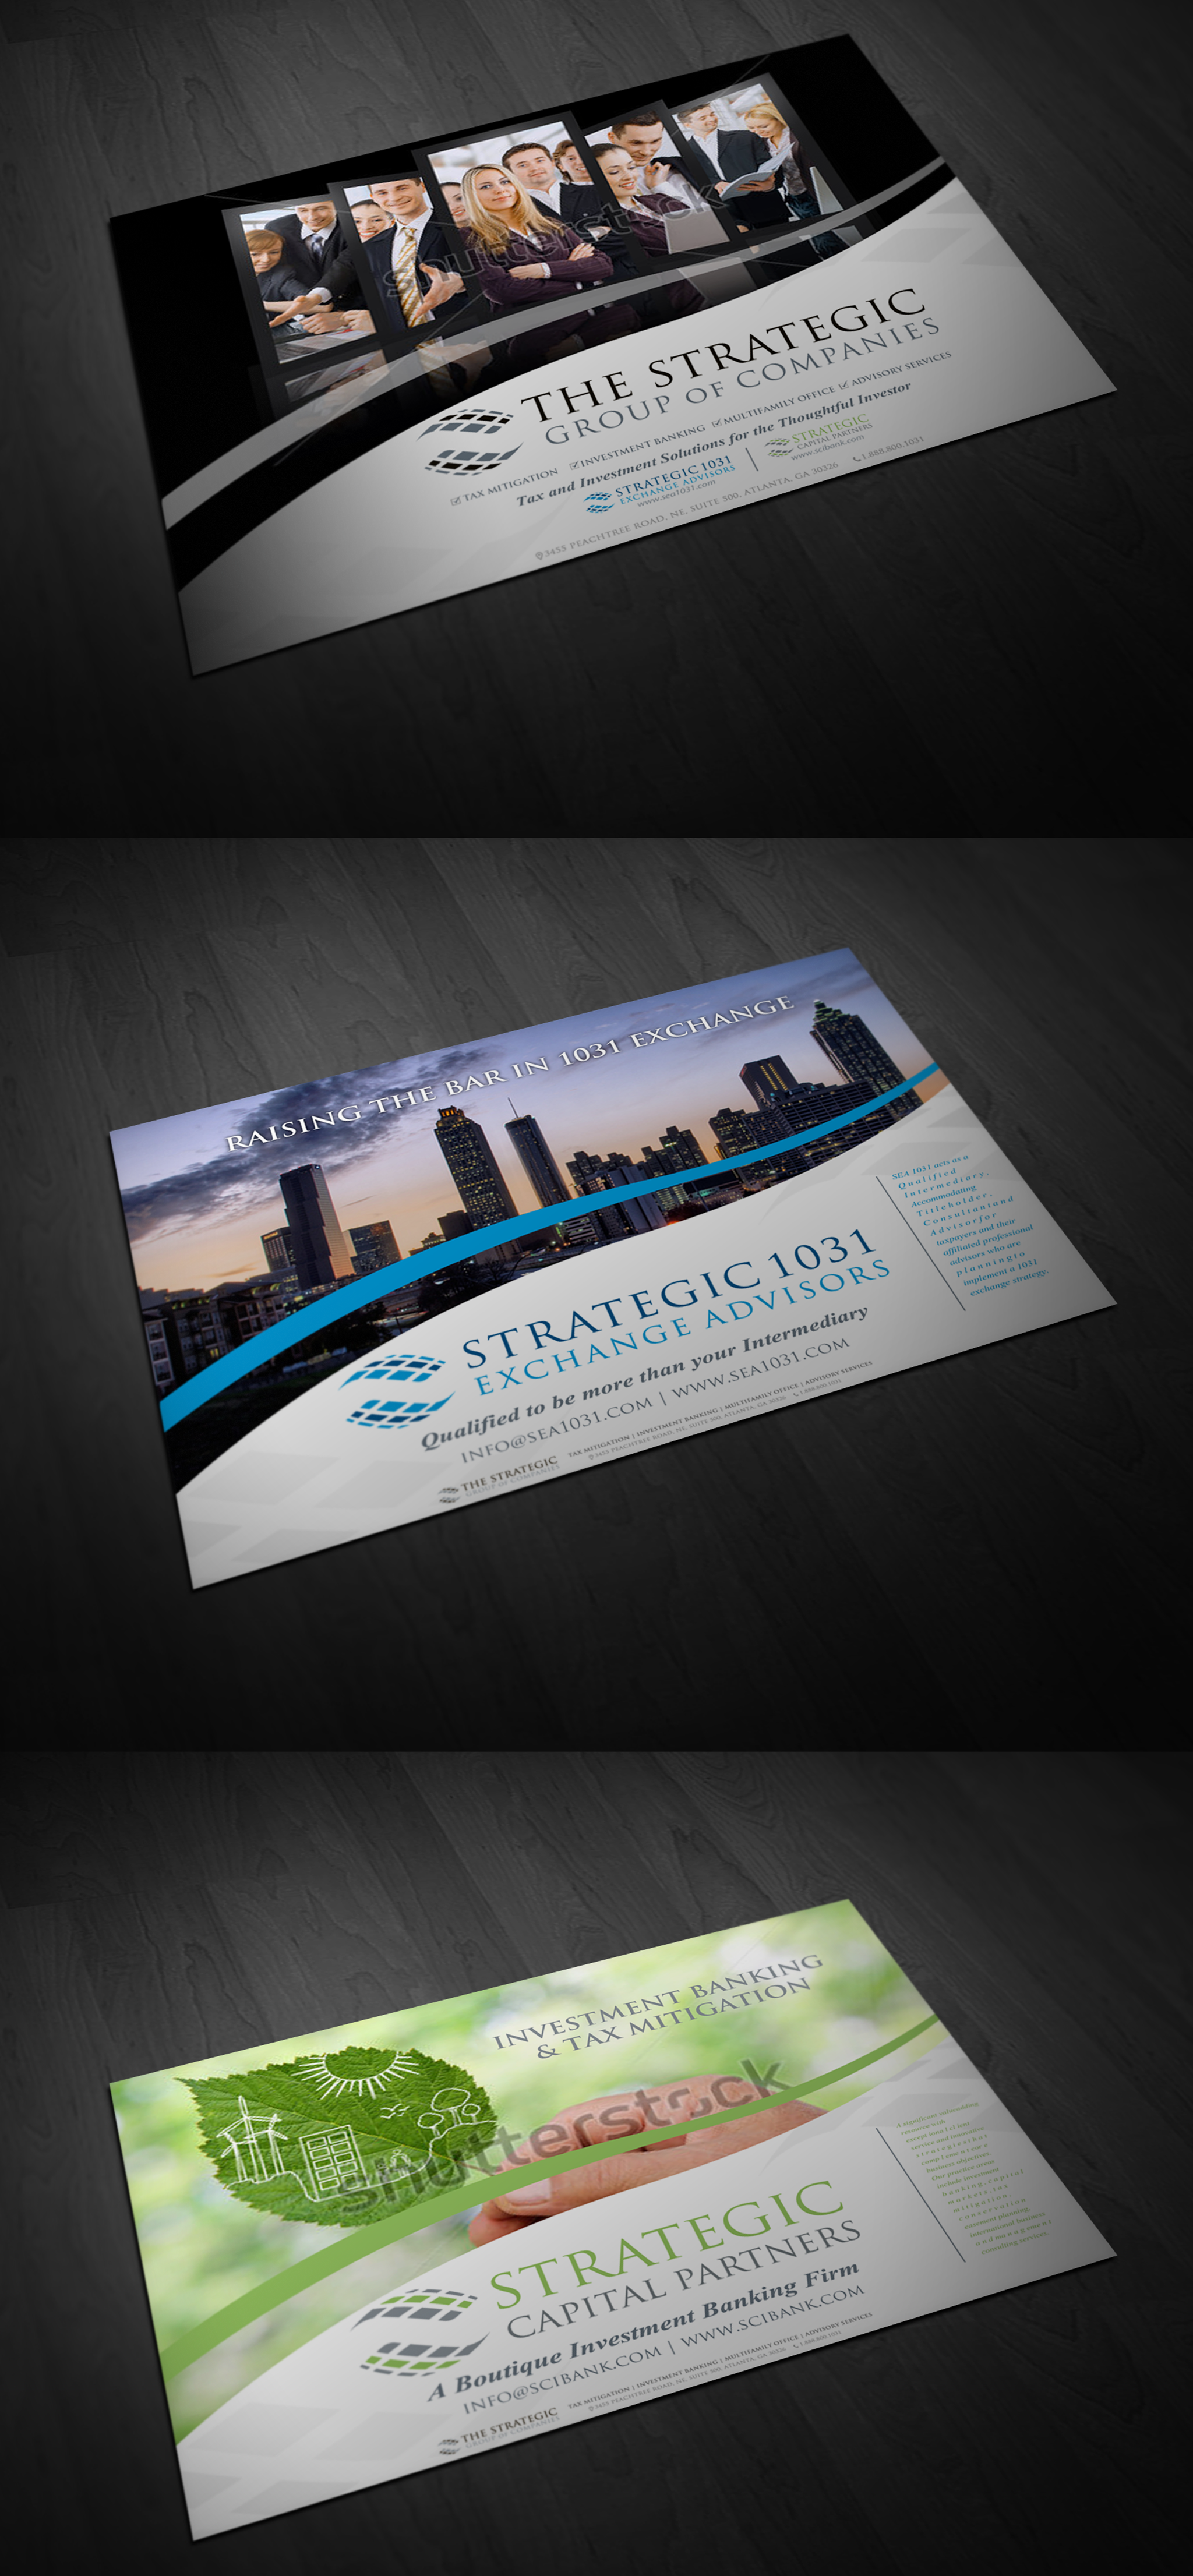 Ad Design for the Strategic Group